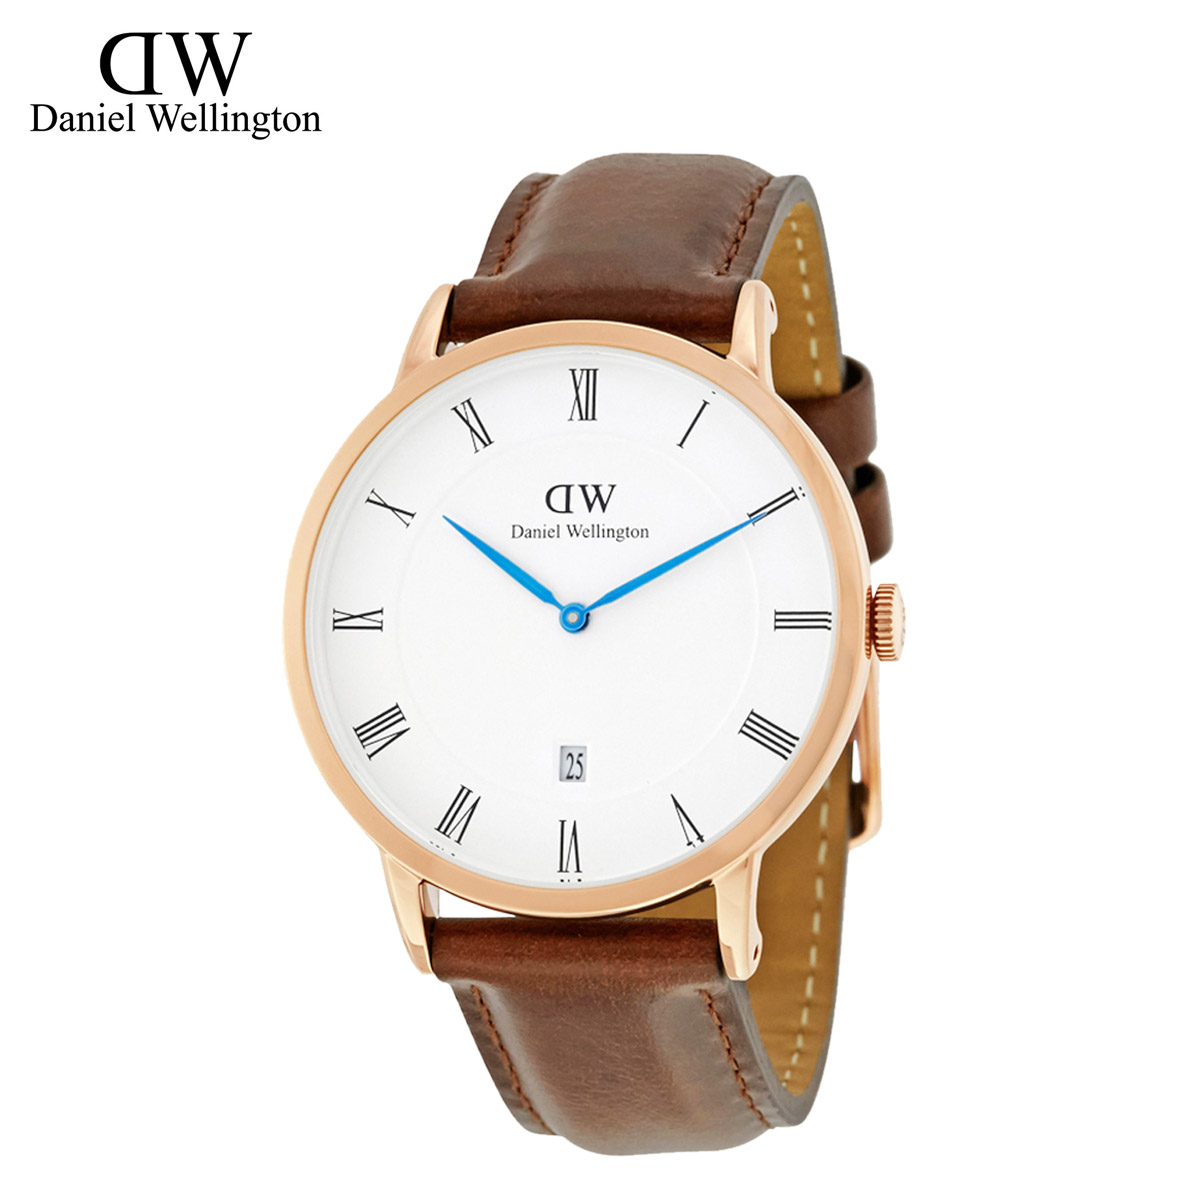 sneak online shop rakuten global market daniel wellington daniel wellington men 39 s watch. Black Bedroom Furniture Sets. Home Design Ideas